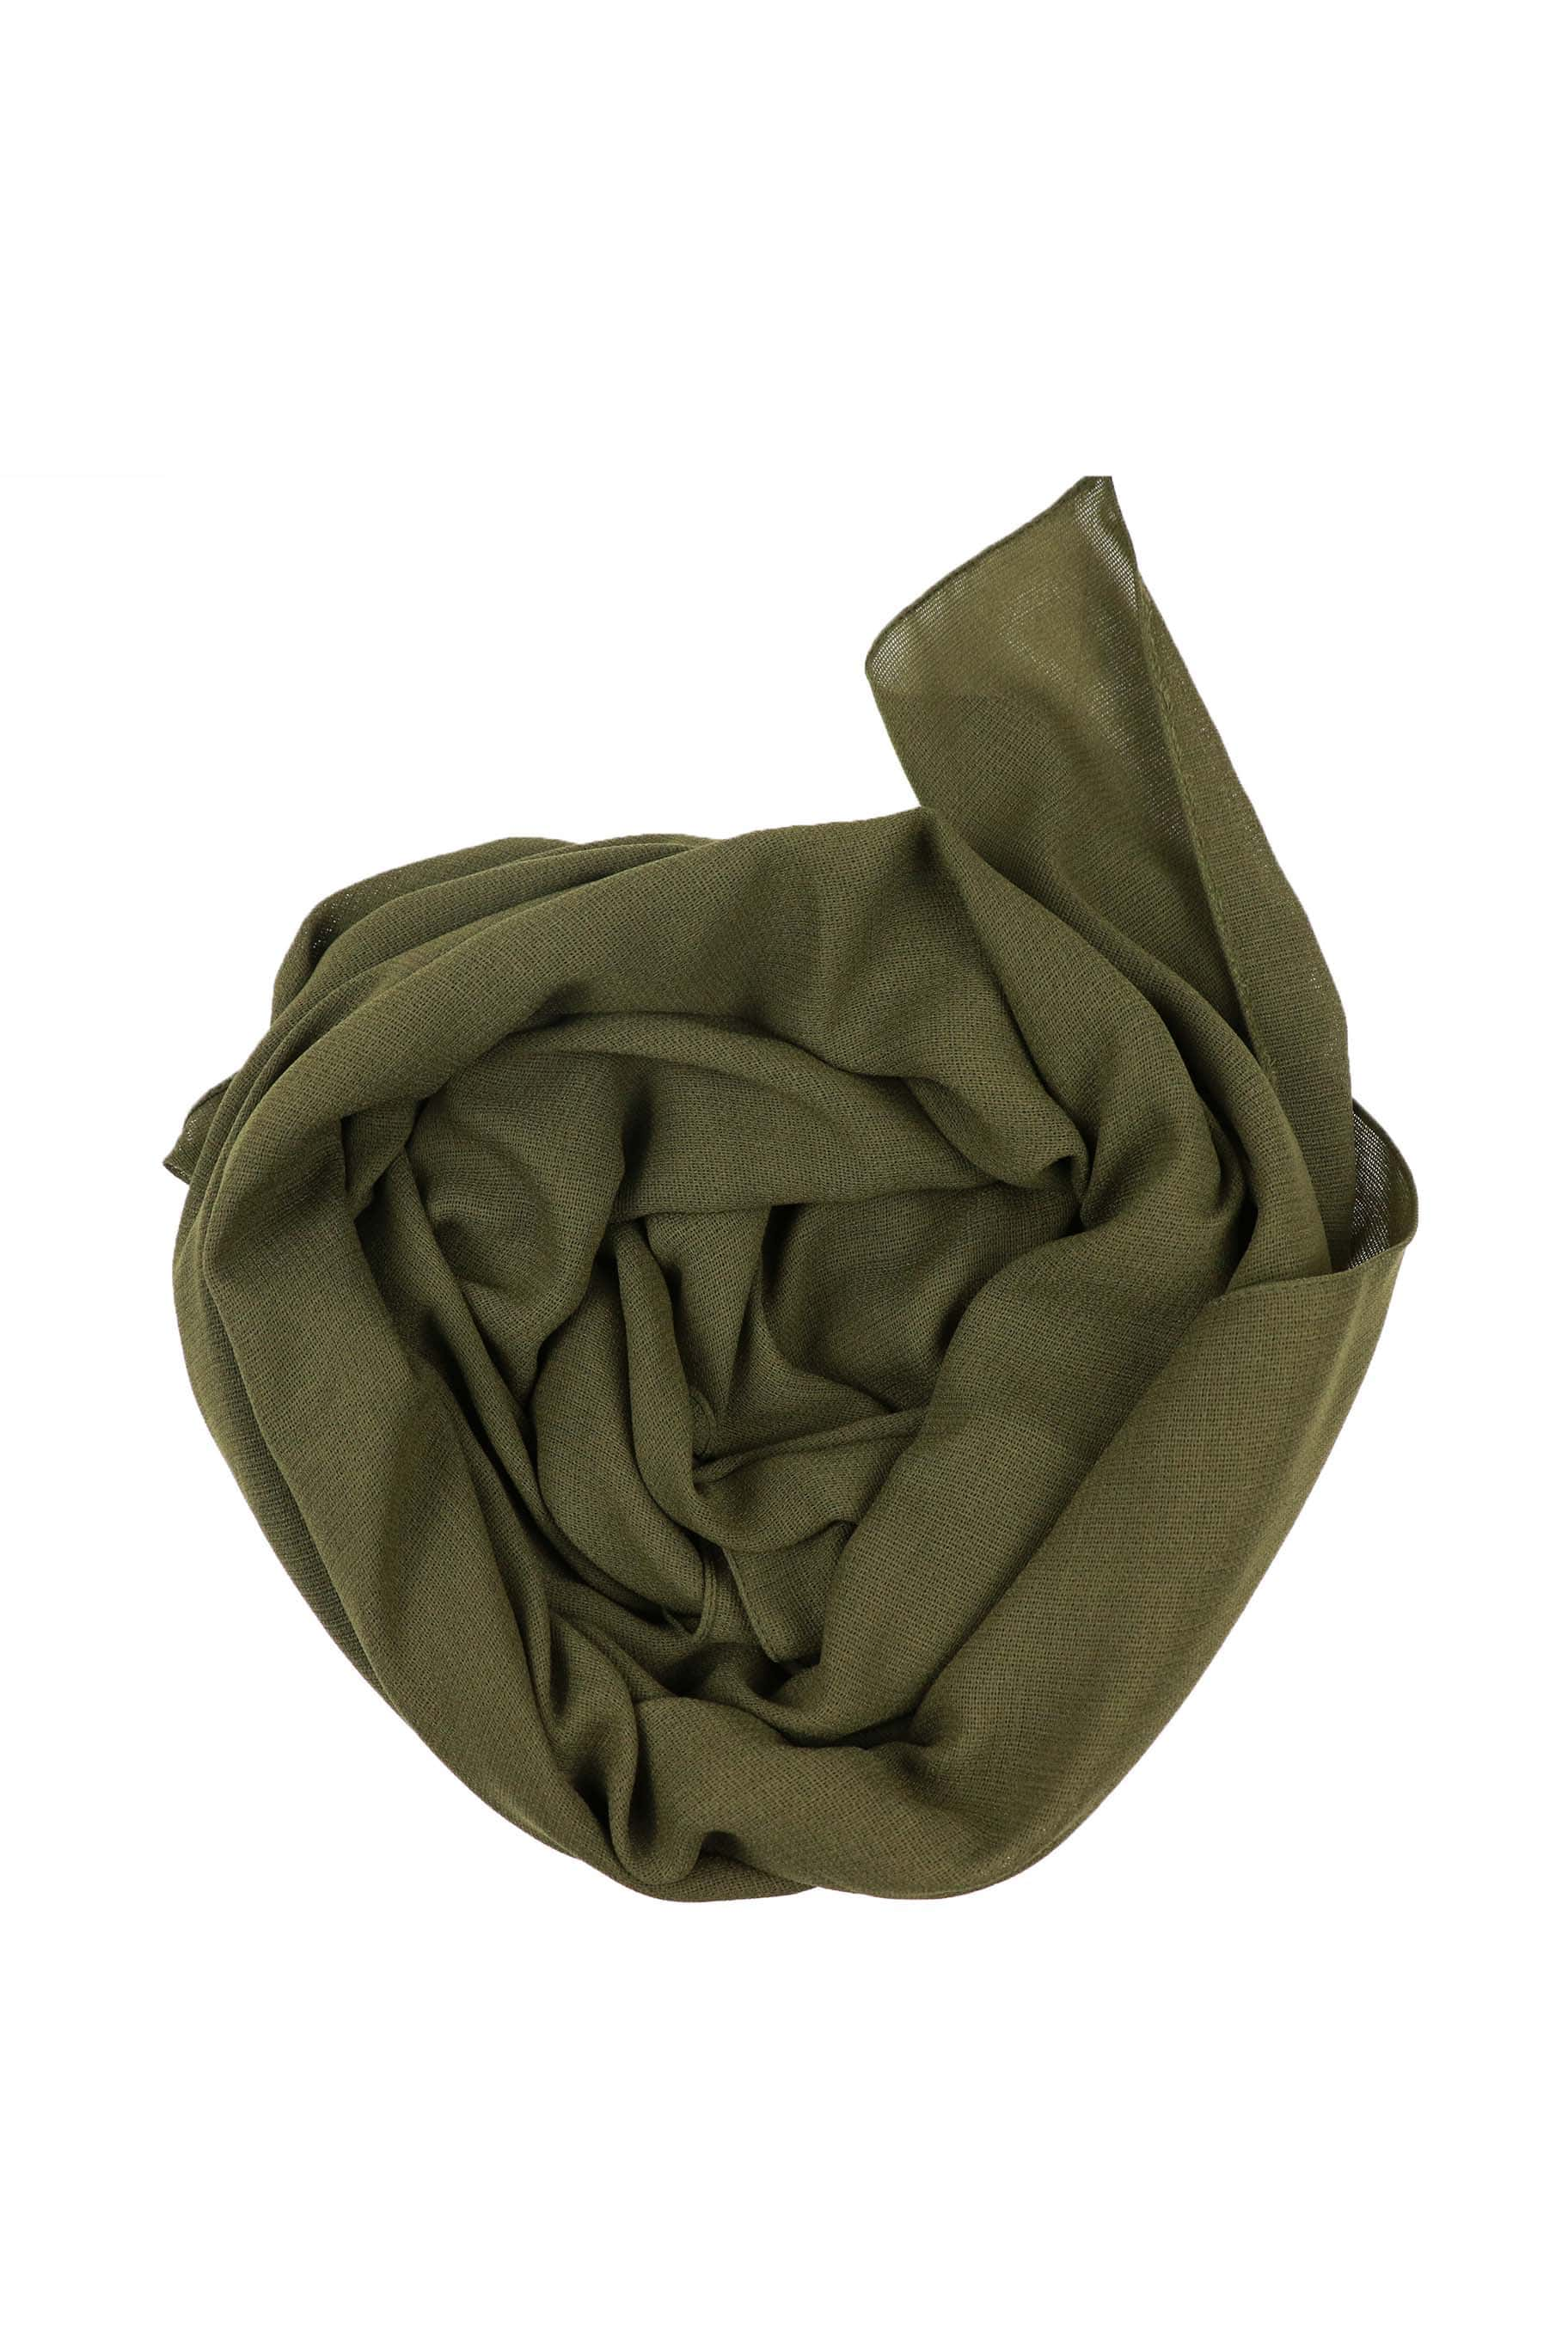 Olive Green Jute Cotton - Jute-Cotton Hijab - The Modest Look